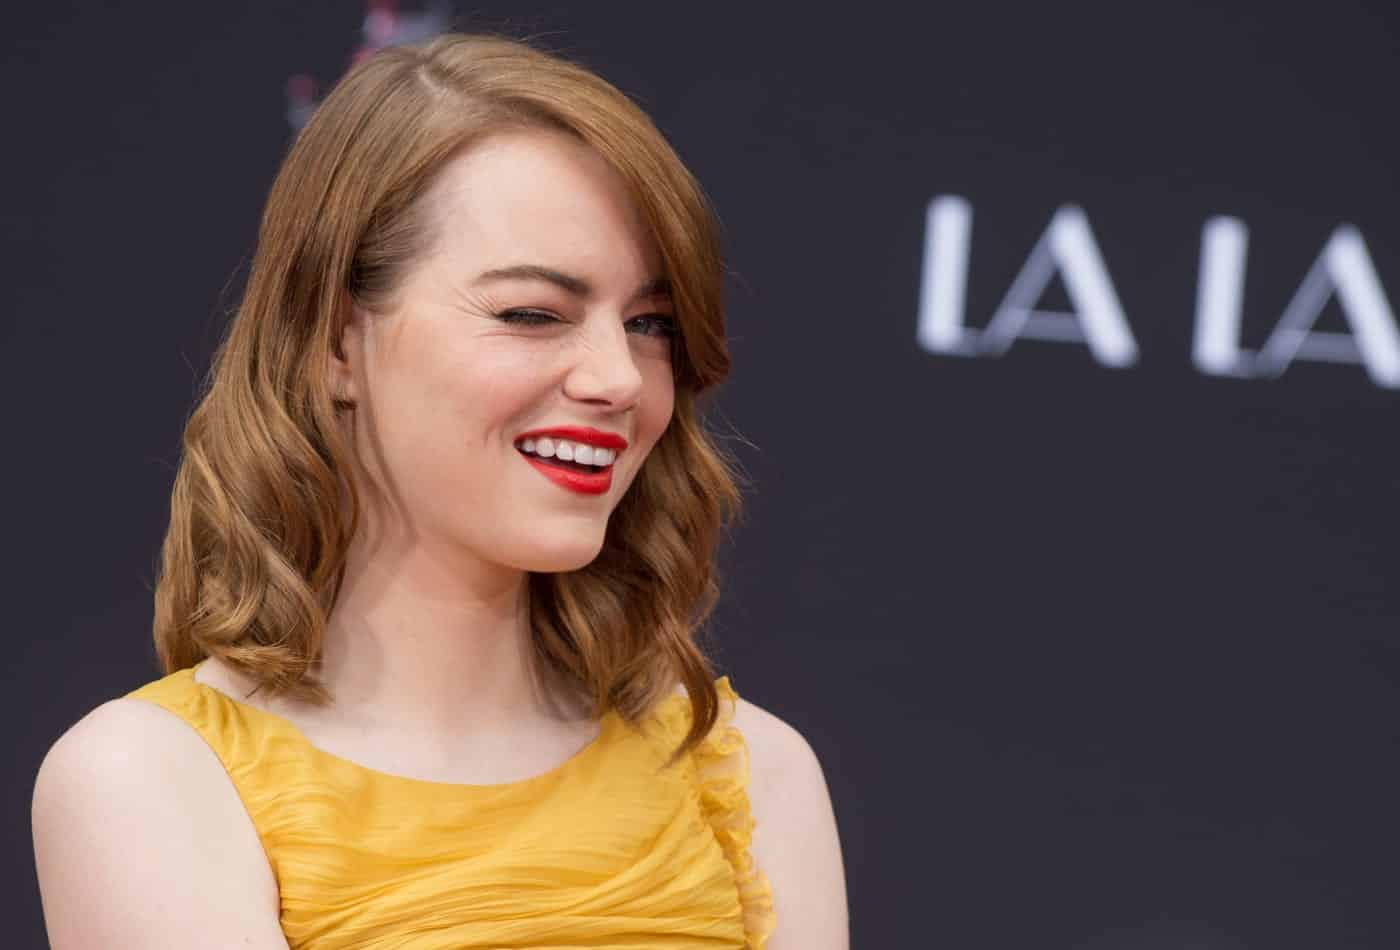 Emma Stone - Top 10 Most Popular Hollywood Actresses In 2020